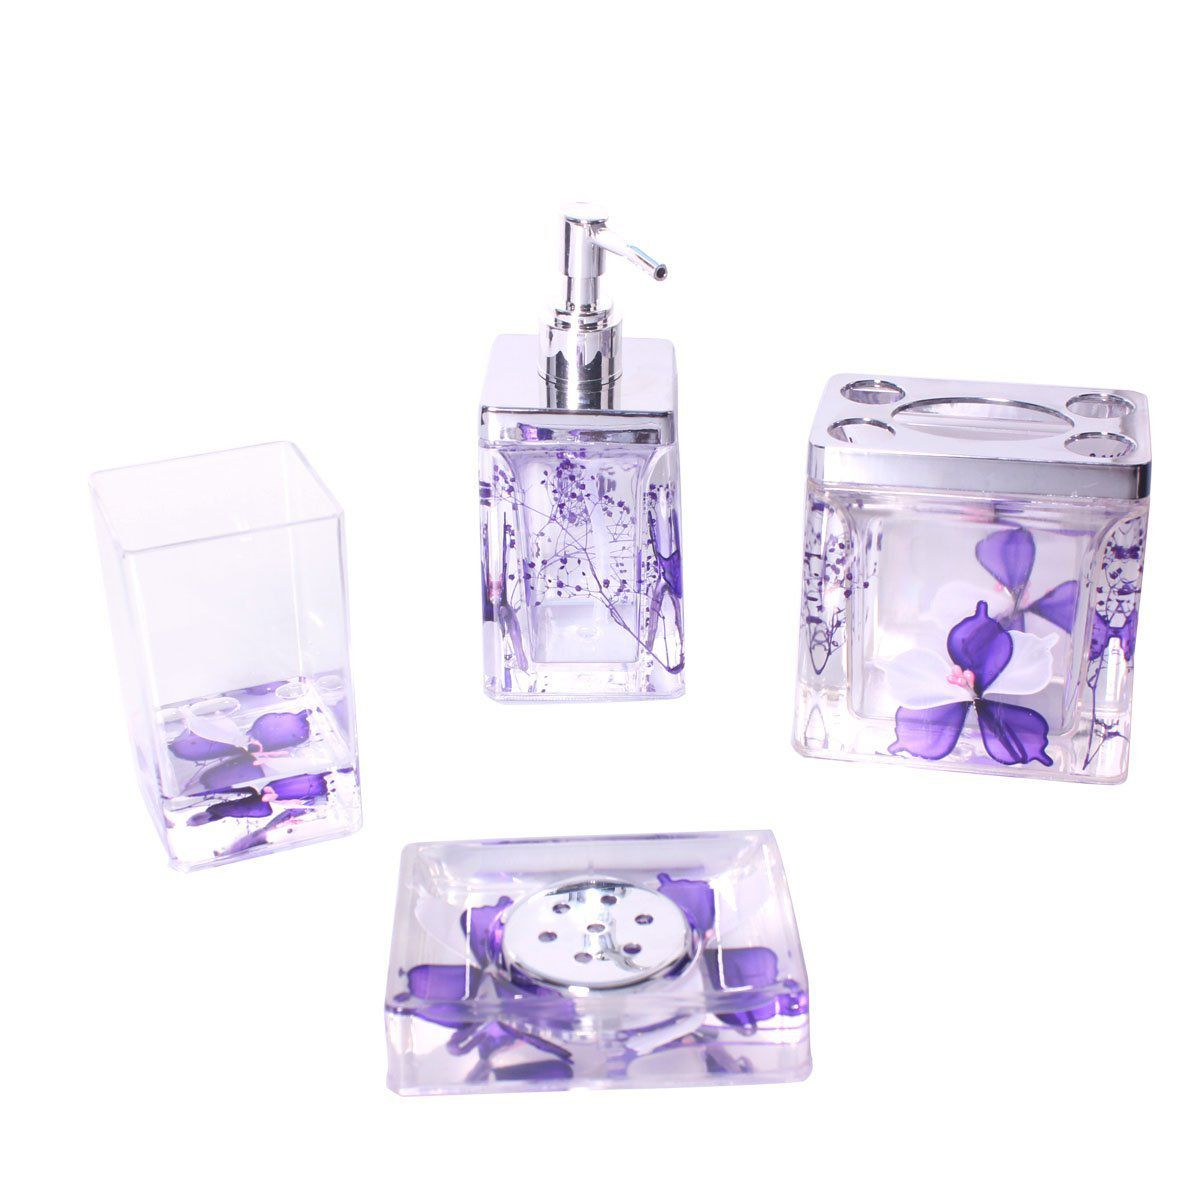 Bathroom 4 Pieces Accessories Set with Lovely Flower (purple)